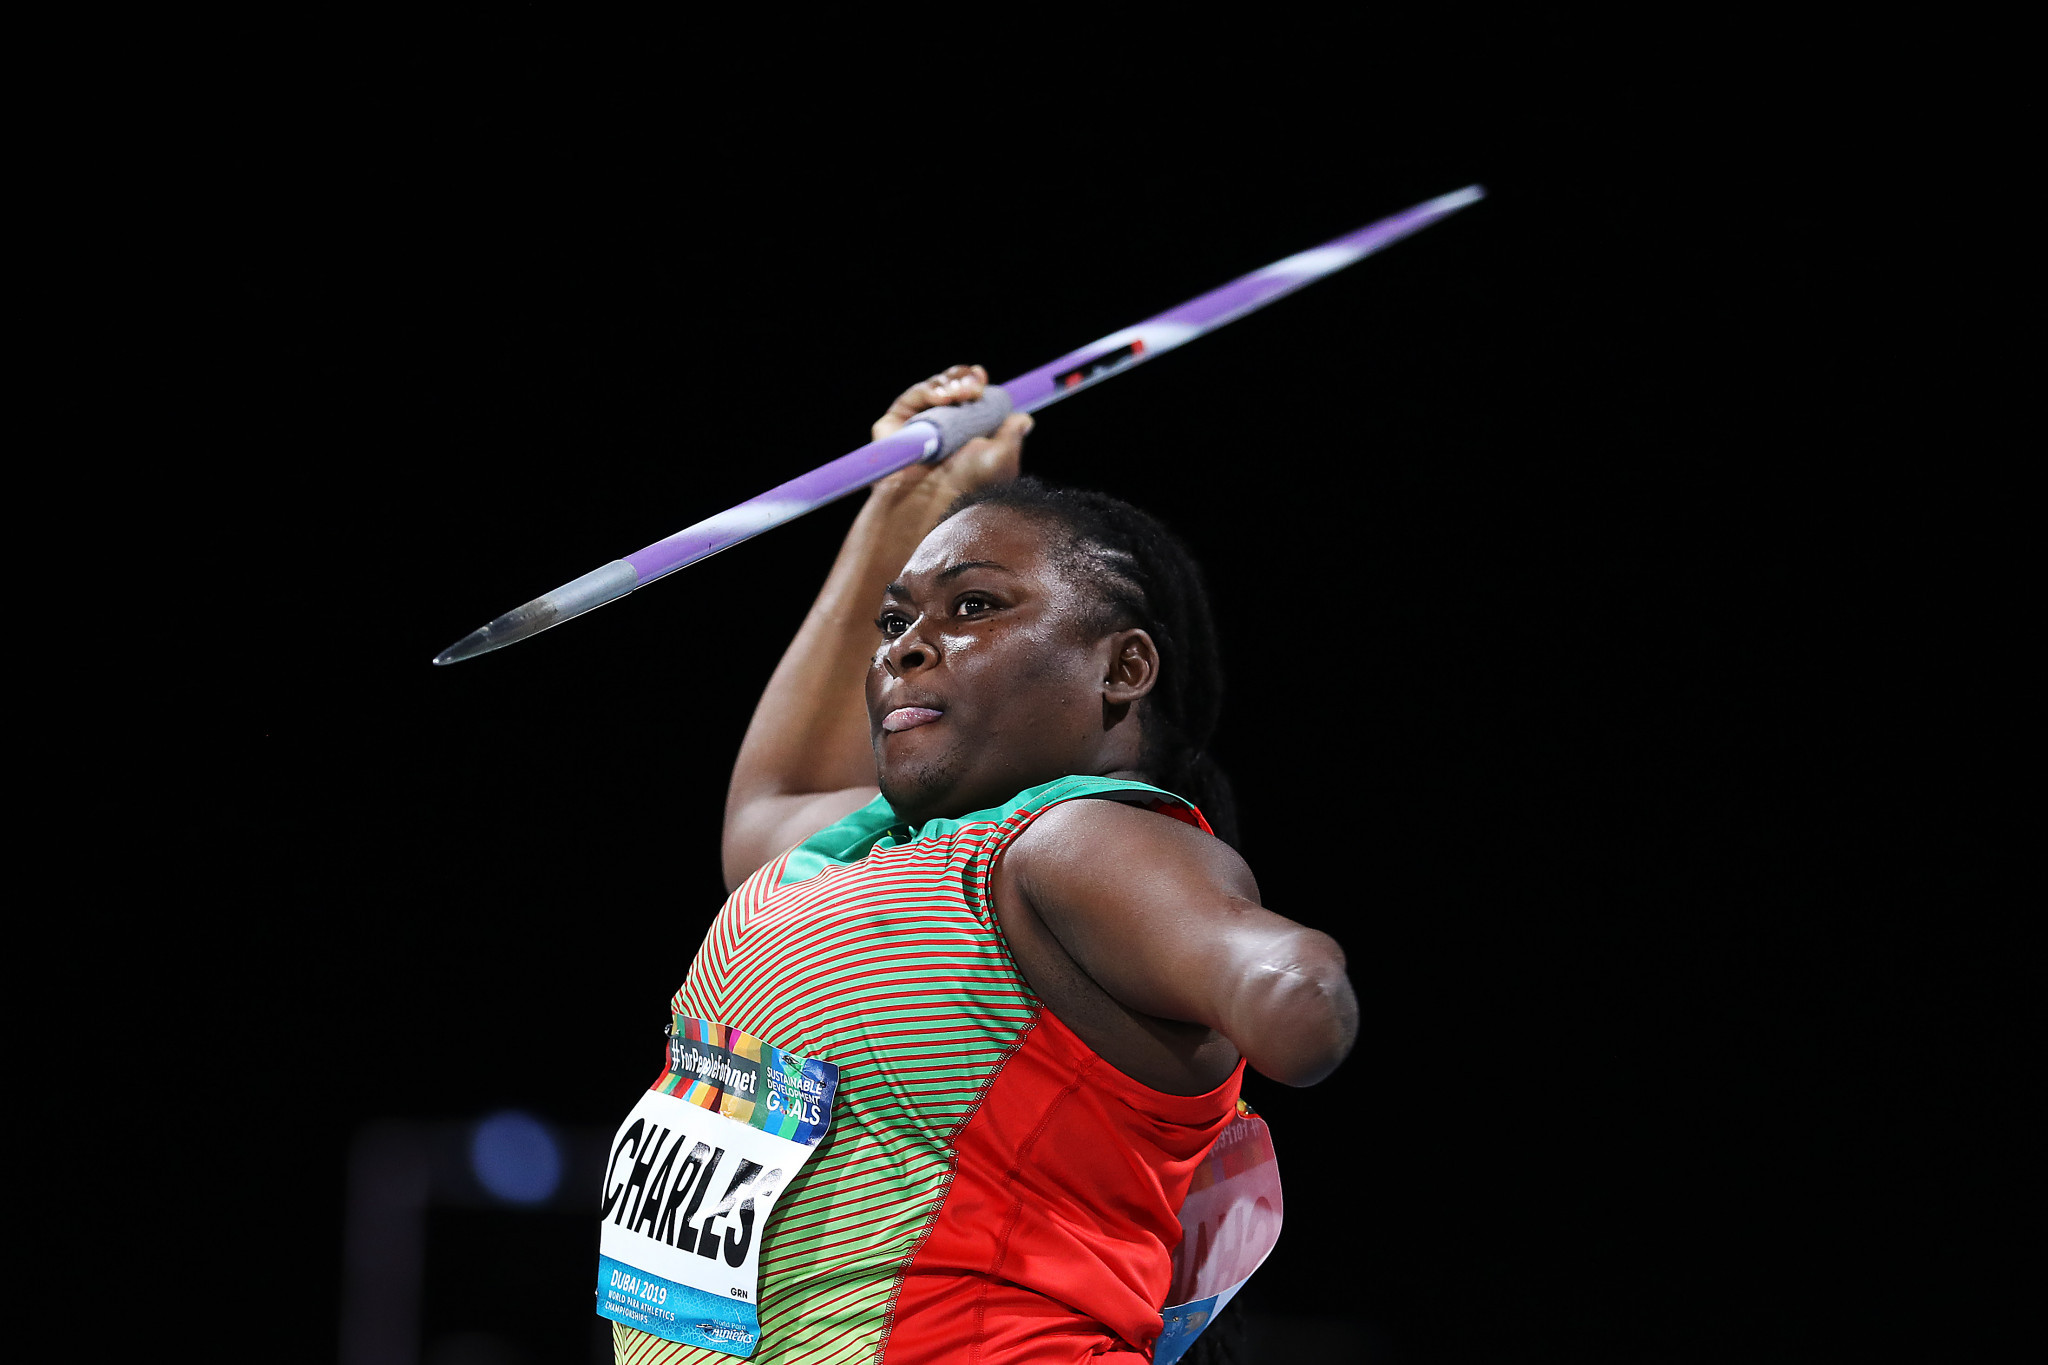 Ishona Charles aims to become Grenada's first Paralympian ©Getty Images